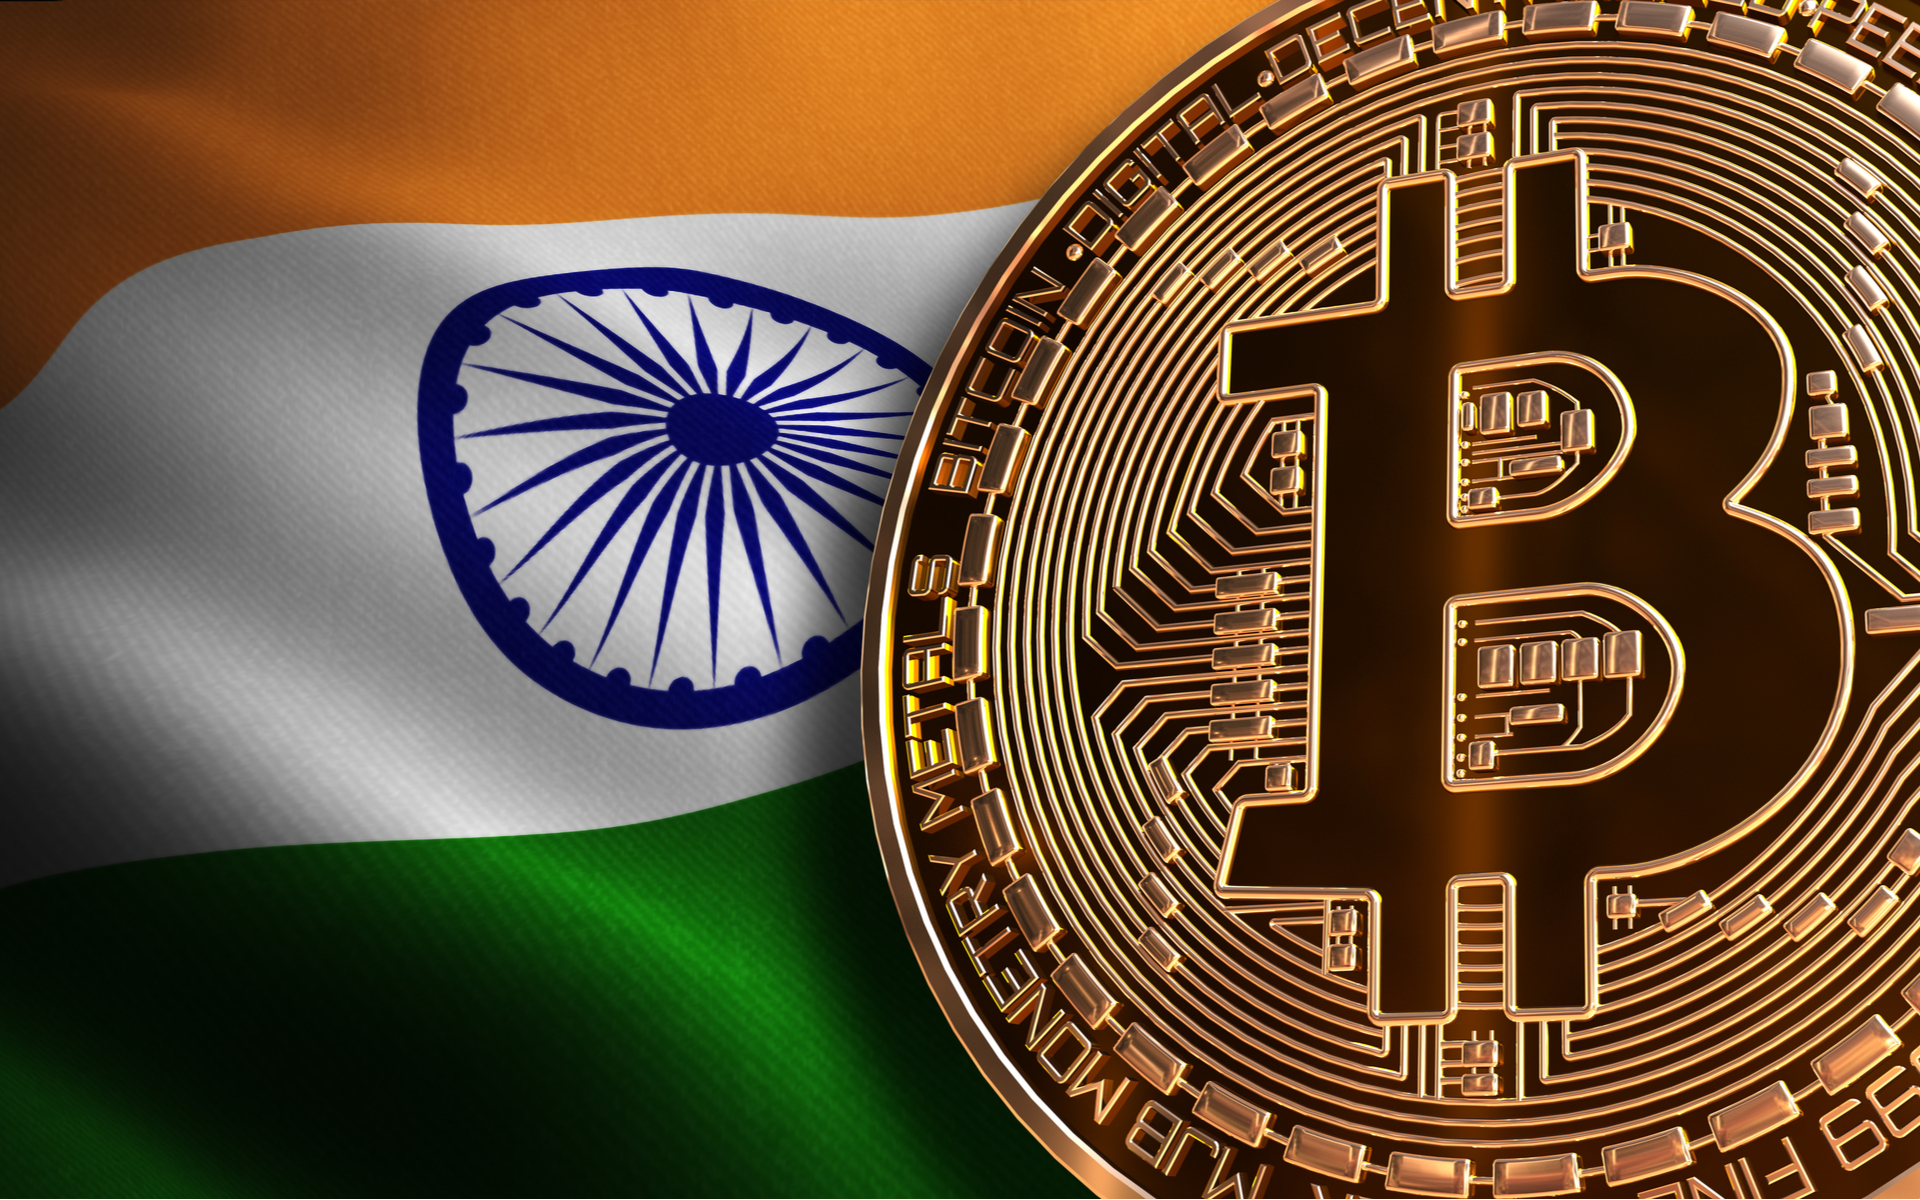 Bitcoin still legal in India